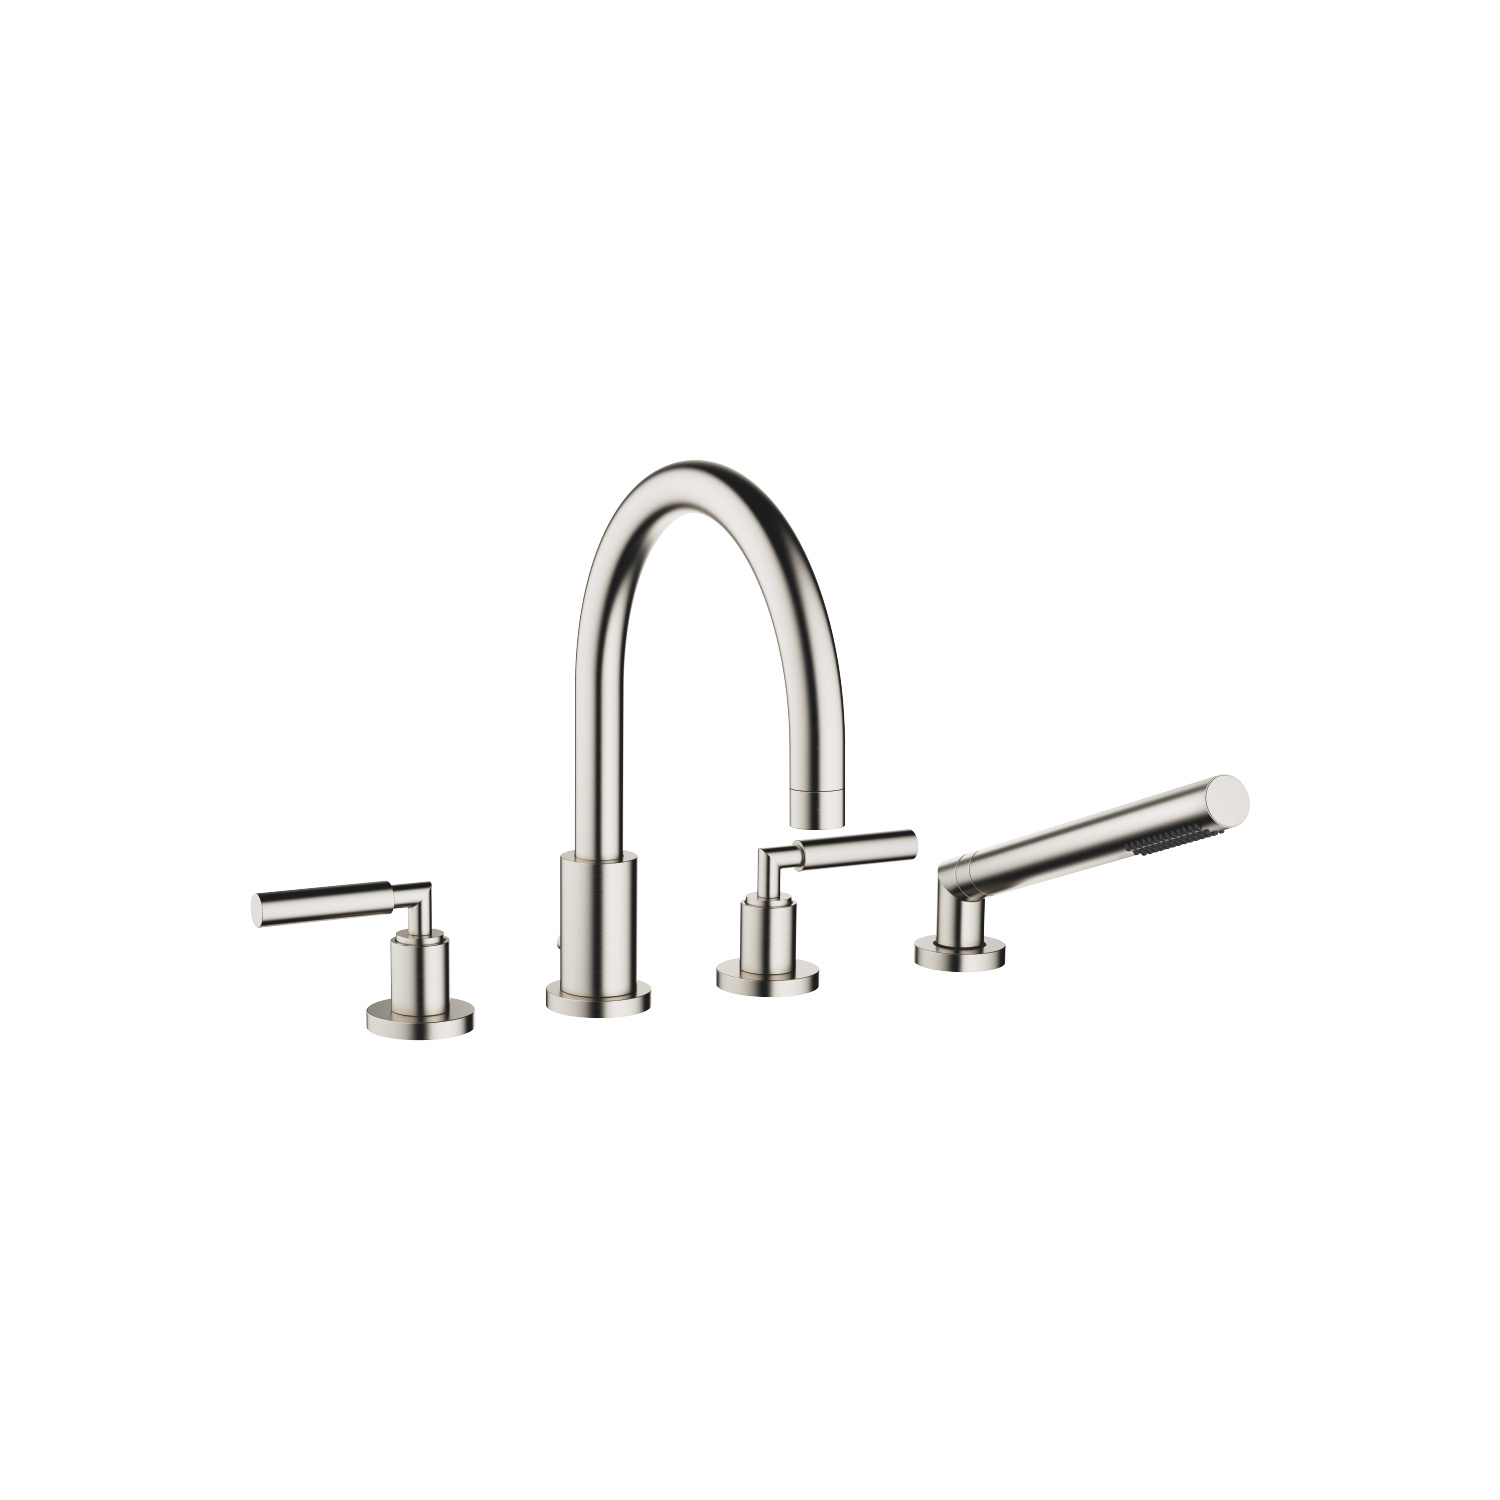 Bath shower set for bath rim or tile edge installation - platinum matt - 27 512 882-06